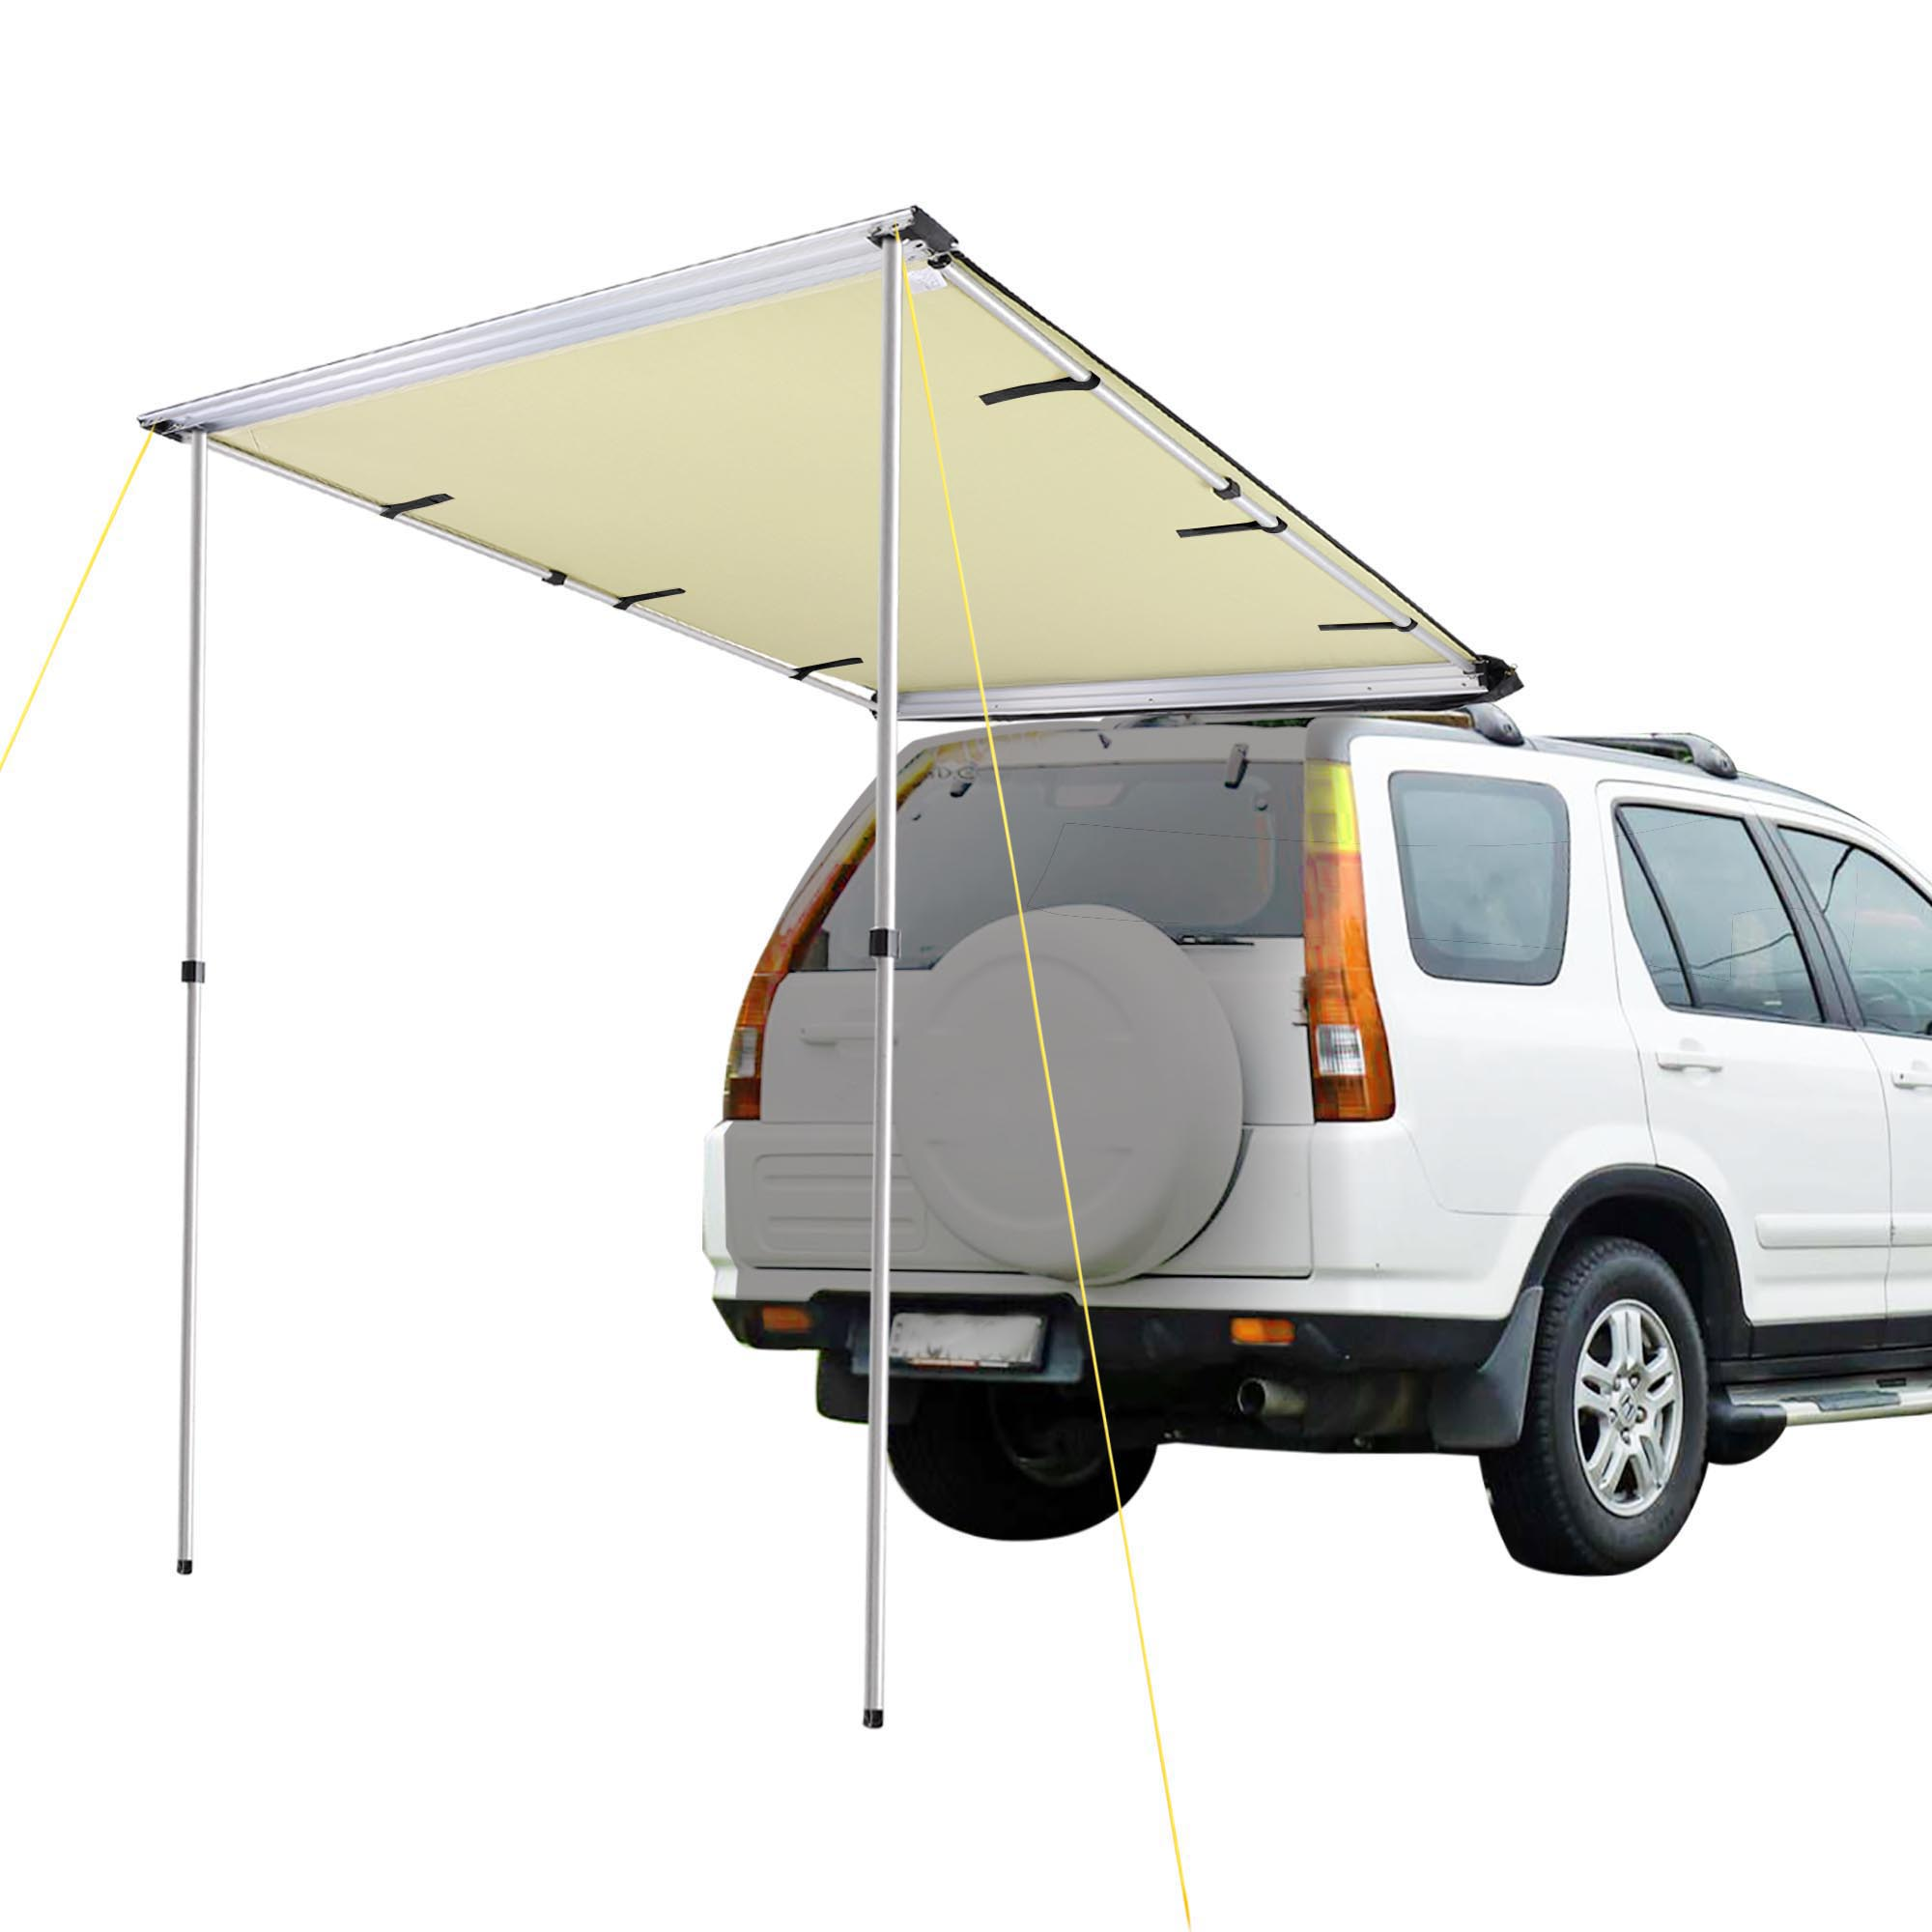 Car Tent Awning Rooftop Suv Truck Camping Travel Shelter Outdoor Sunshade Canopy For Sale Online